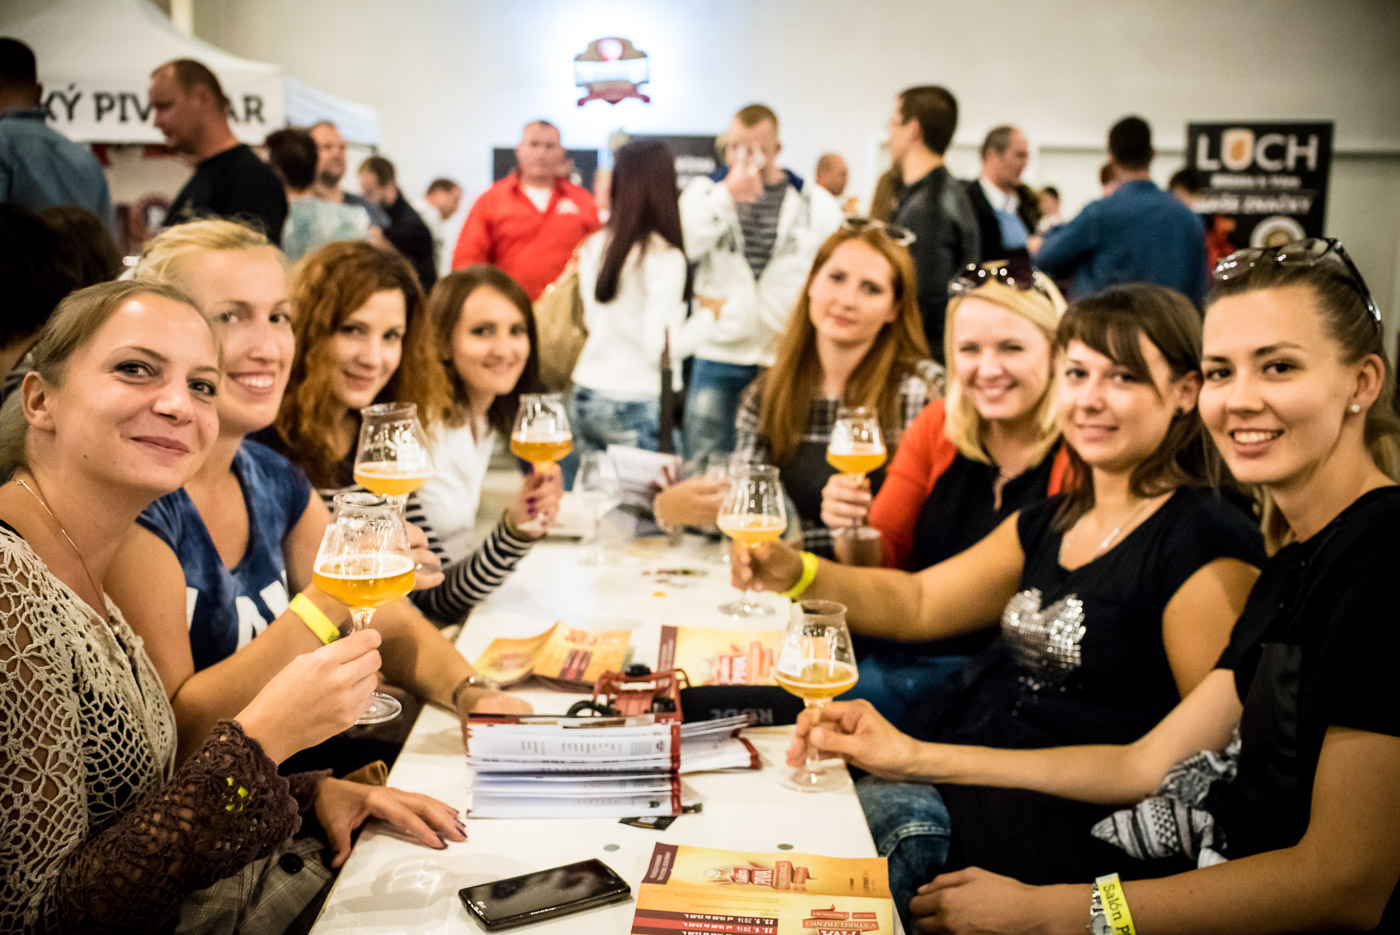 picture Salón Piva - craft beer festival #2